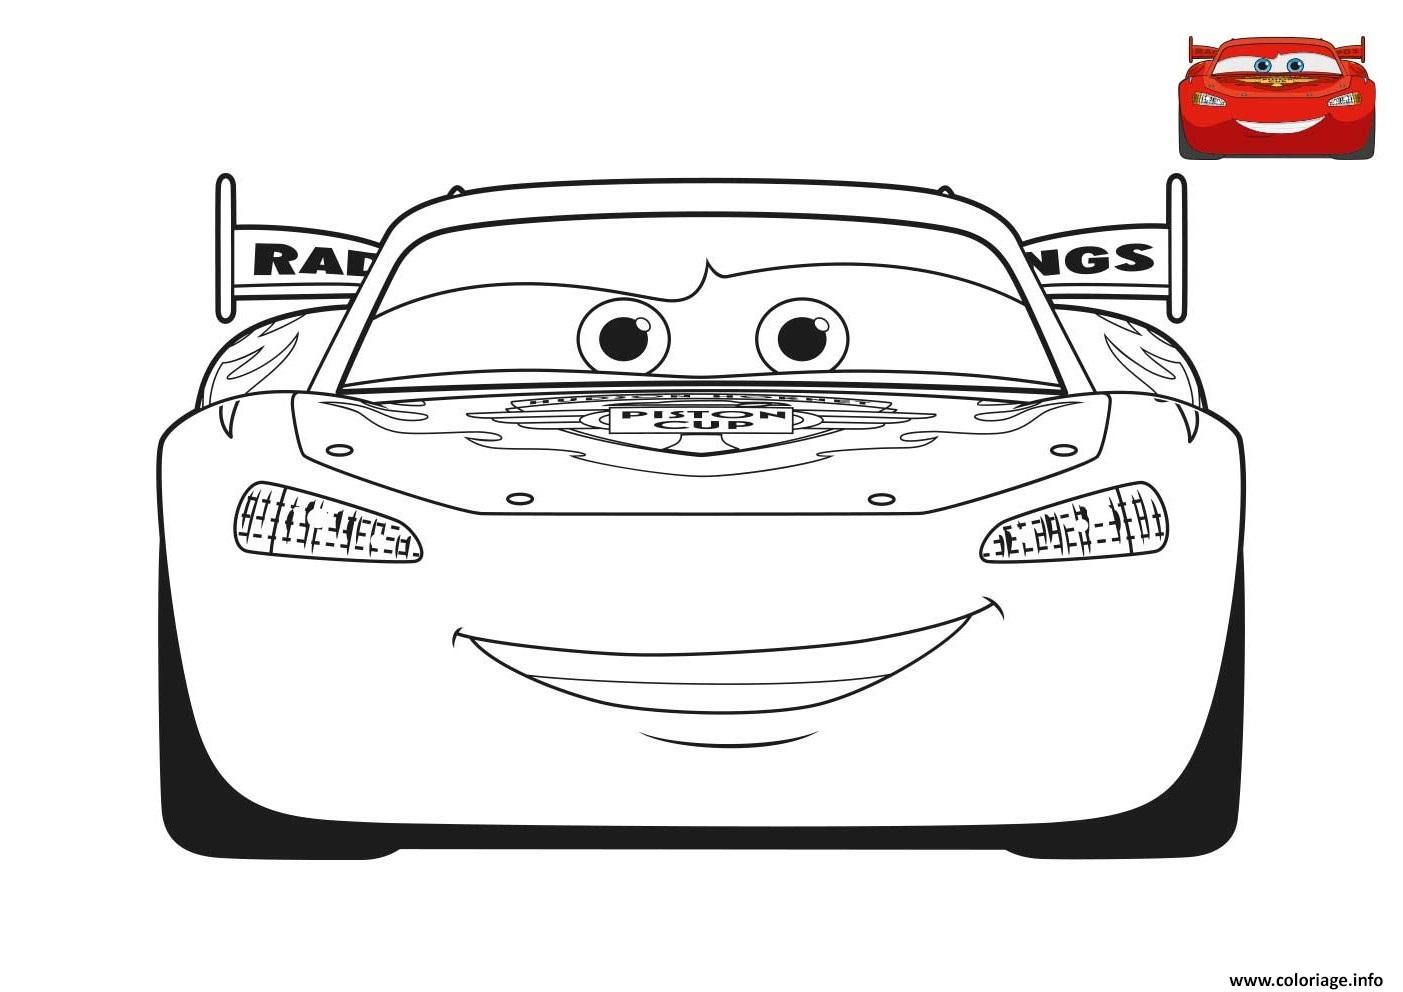 Coloriage Gratuit Mcqueen.Coloriage Film Cars 3 Flash Mcqueen Voiture Rouge Jecolorie Com